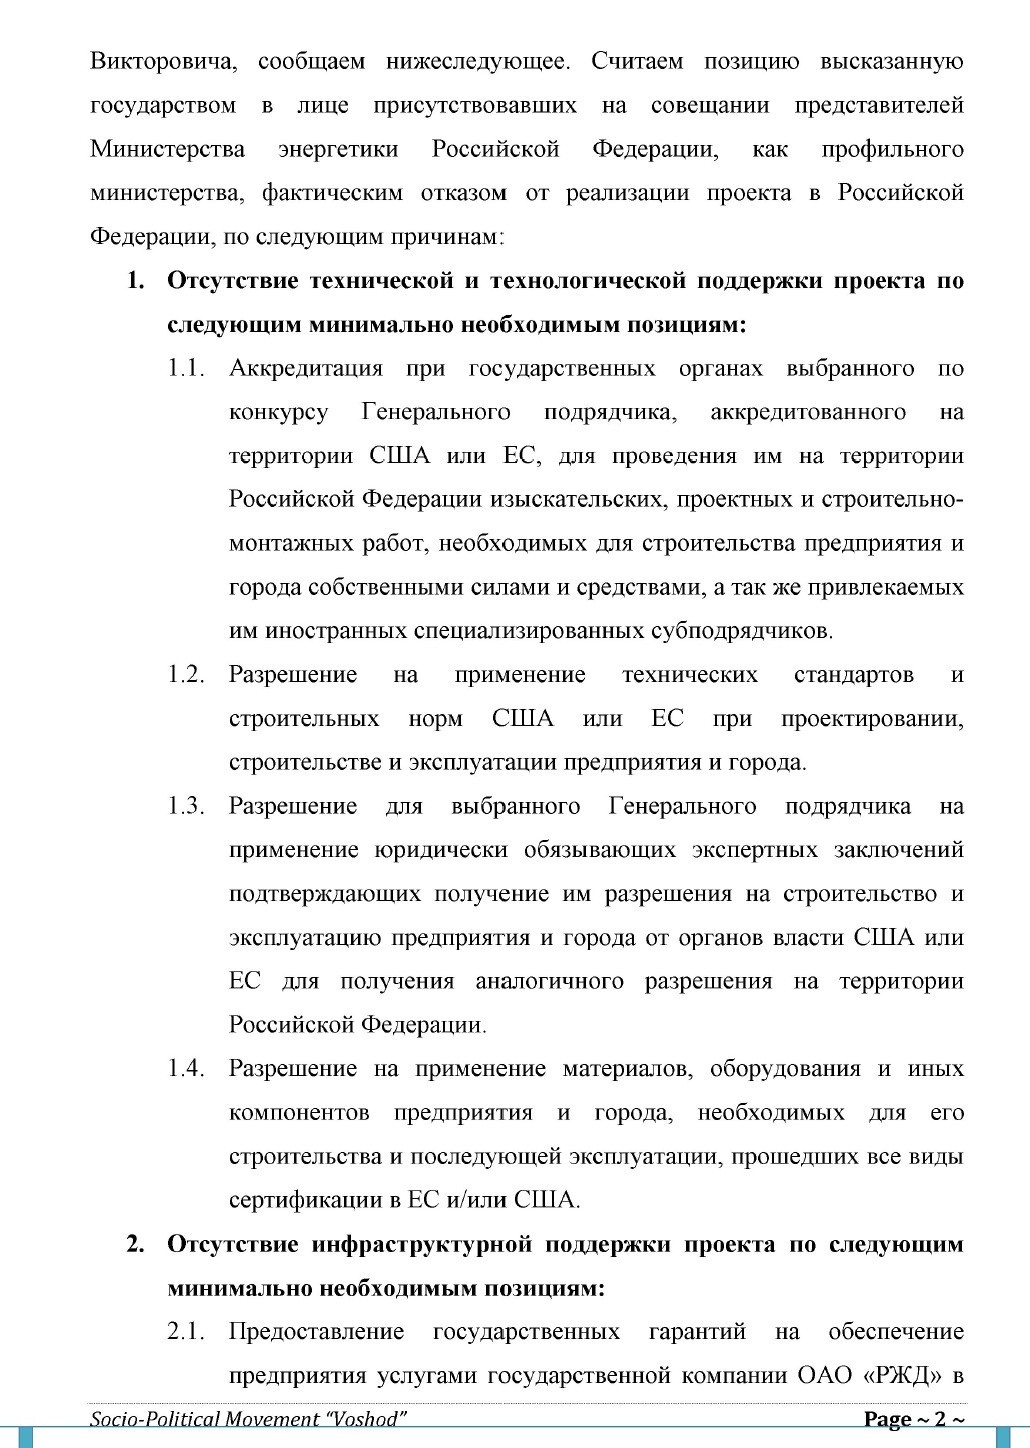 Letter to President of Russia N37-2